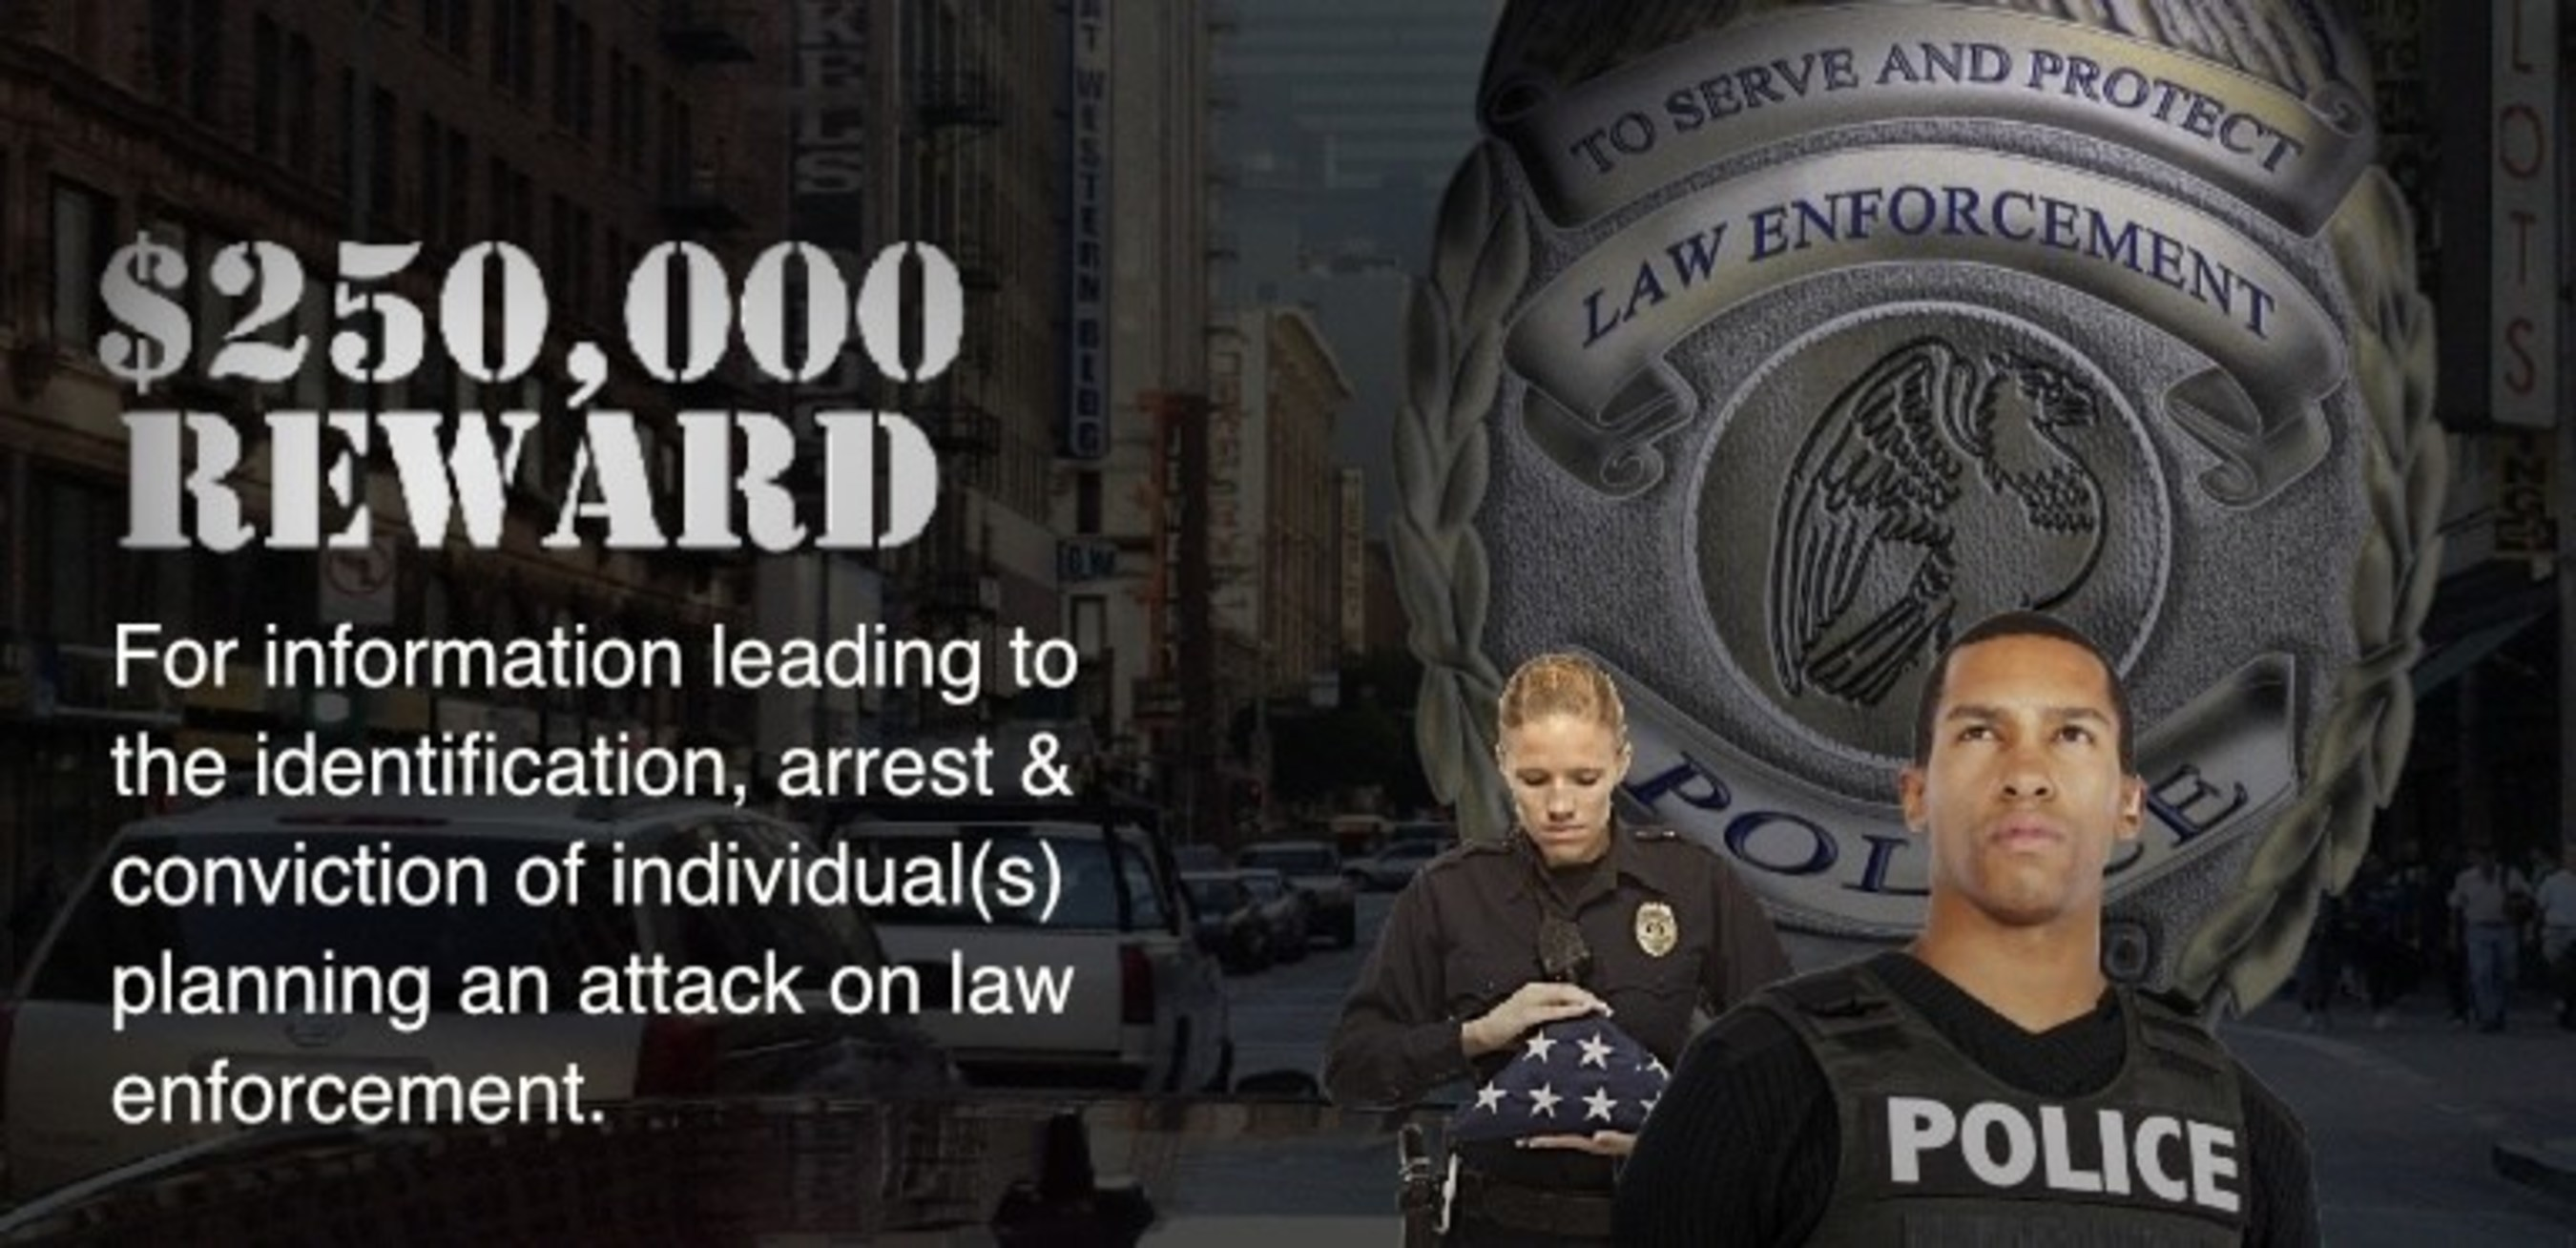 $250,000 Reward - Info to Prevent Planned Ambush Attacks on Police Officers